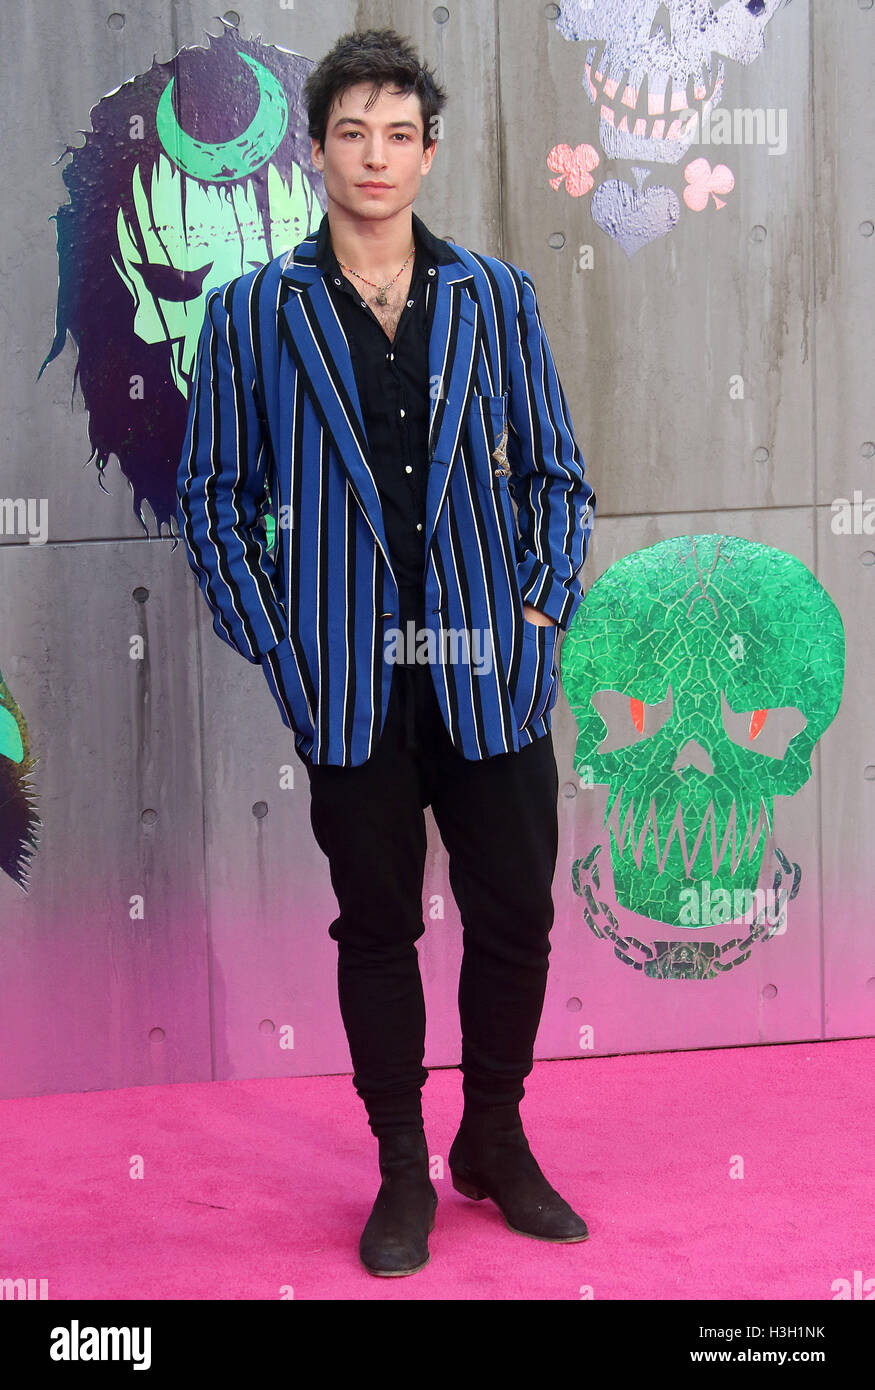 August 3, 2016 - Ezra Miller attending 'Suicide Squad' European Premiere at Odeon, Leicester Square in London, - Stock Image